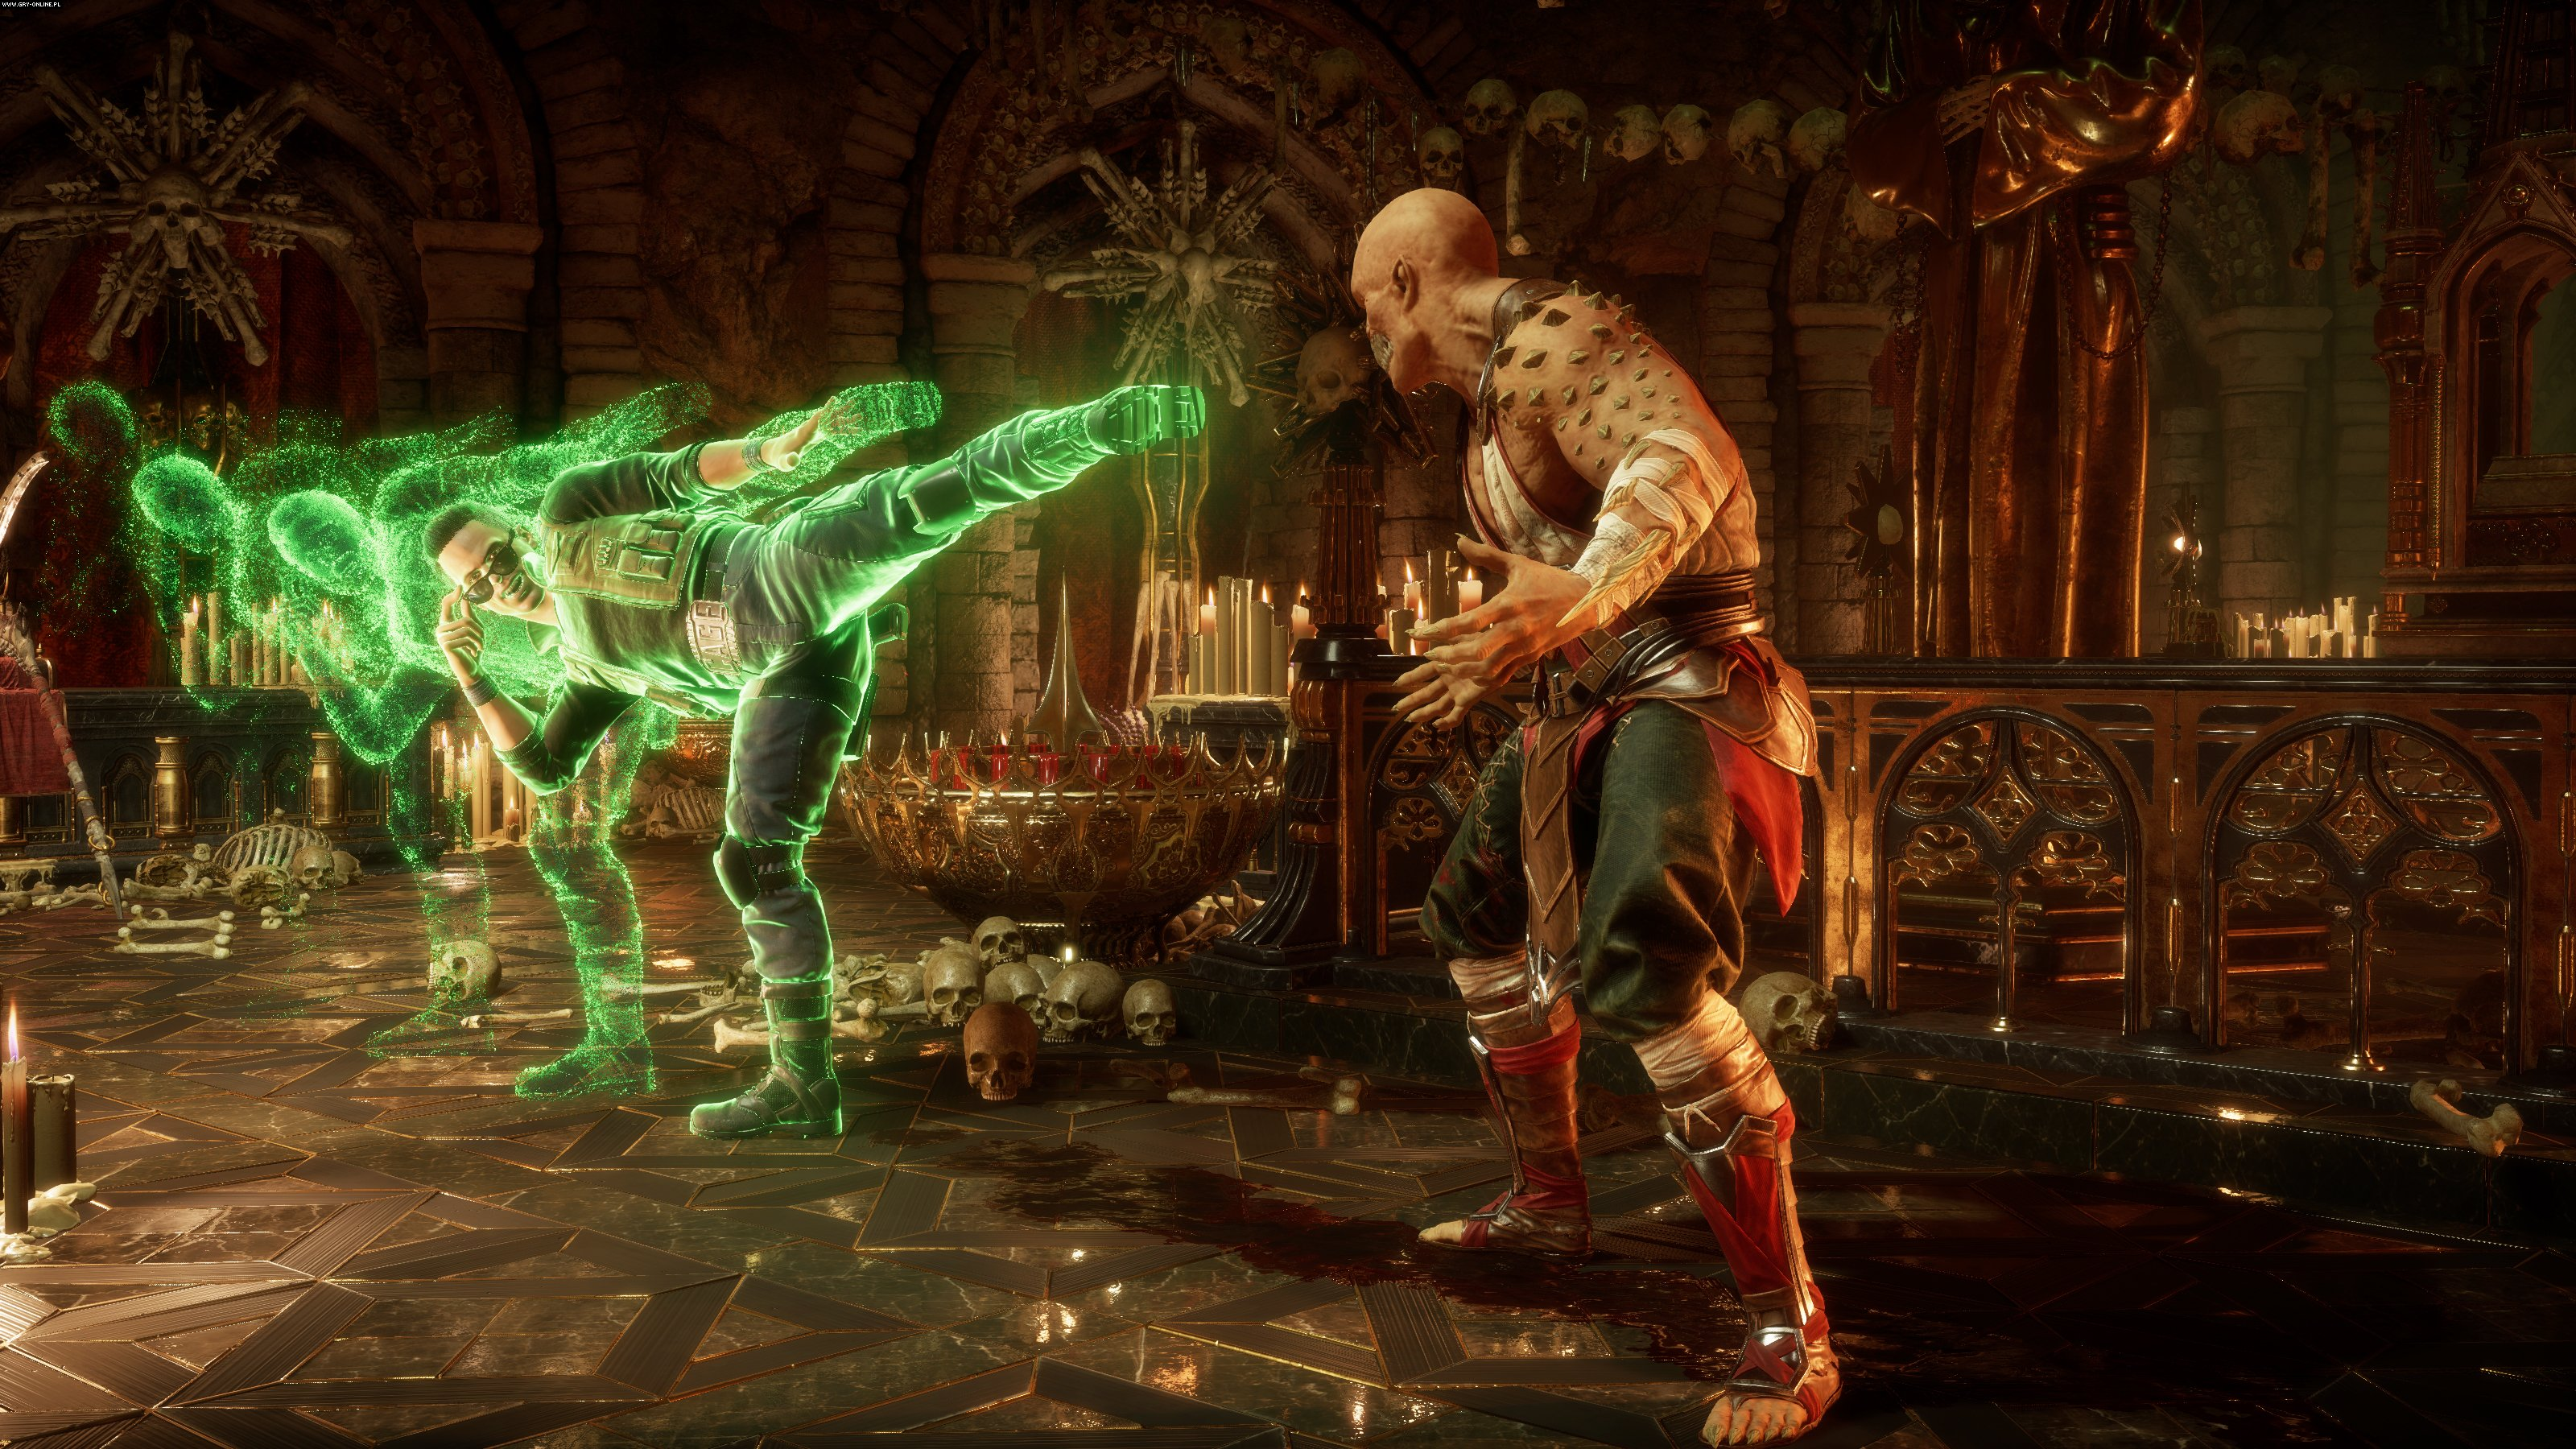 Mortal Kombat 11 PC, PS4, XONE, Switch Games Image 1/17, NetherRealm Studios , Warner Bros. Interactive Entertainment